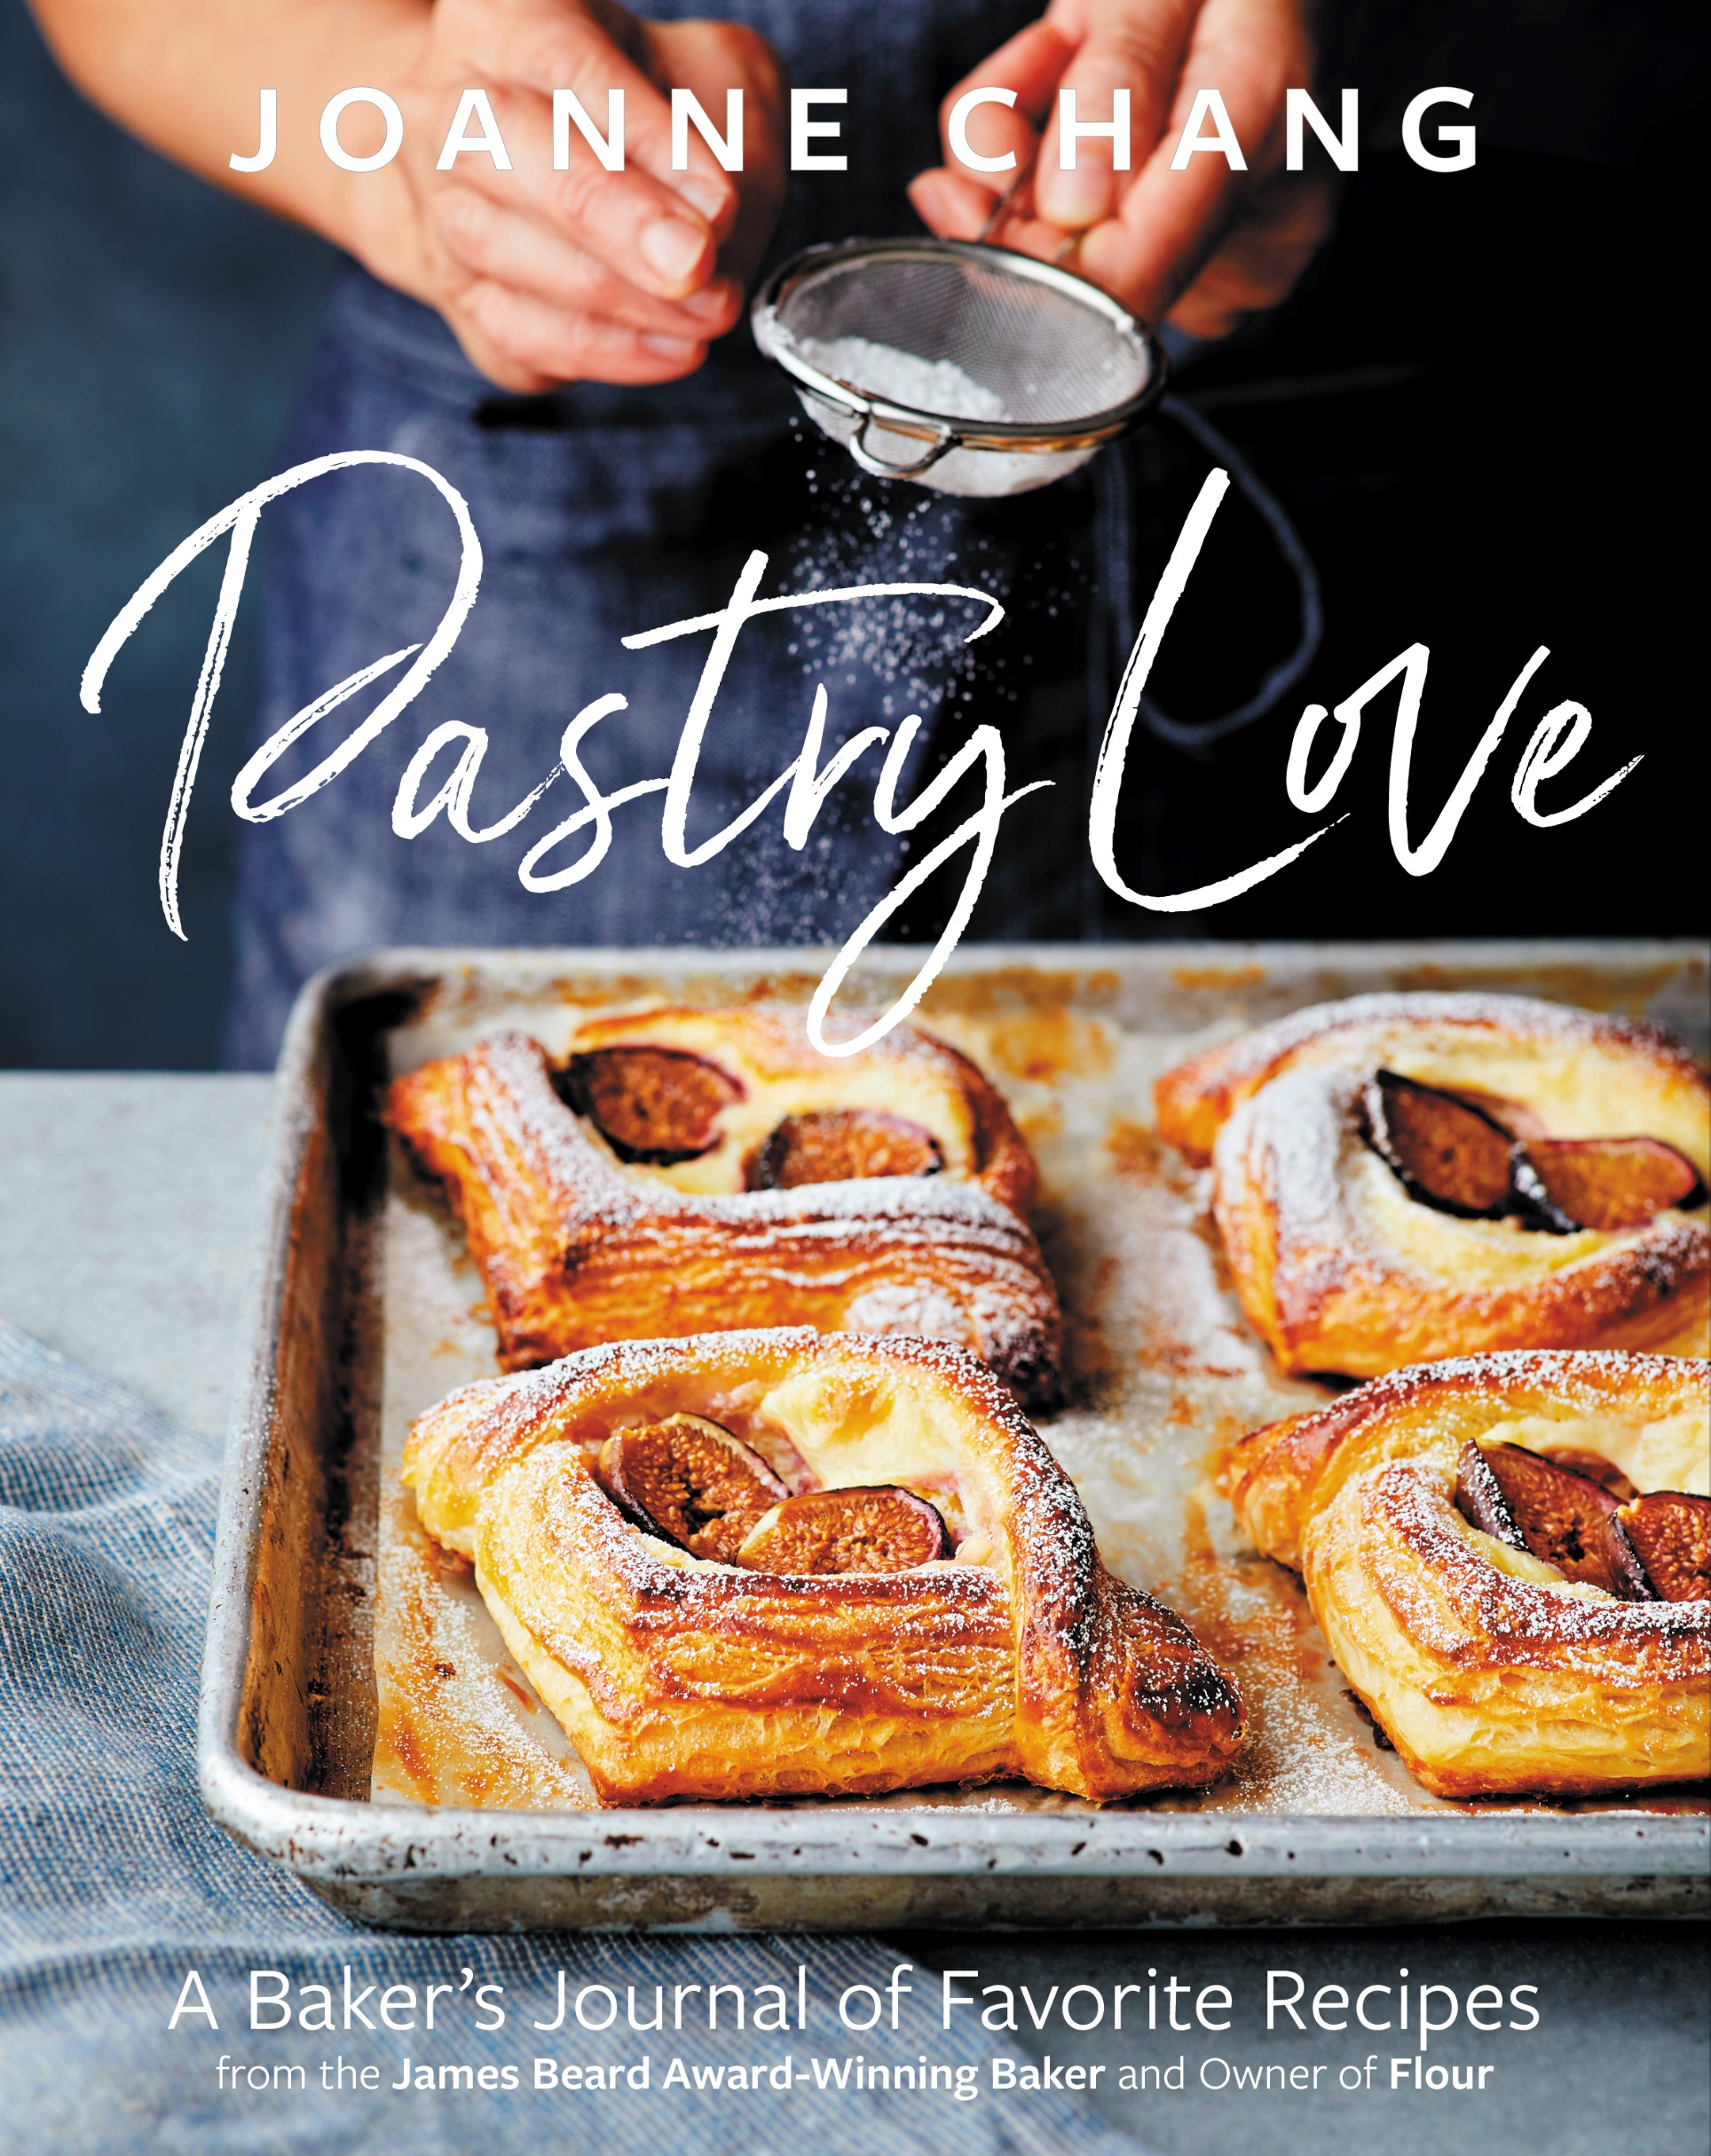 COOK THIS: Pastry Love by Joanne Chang